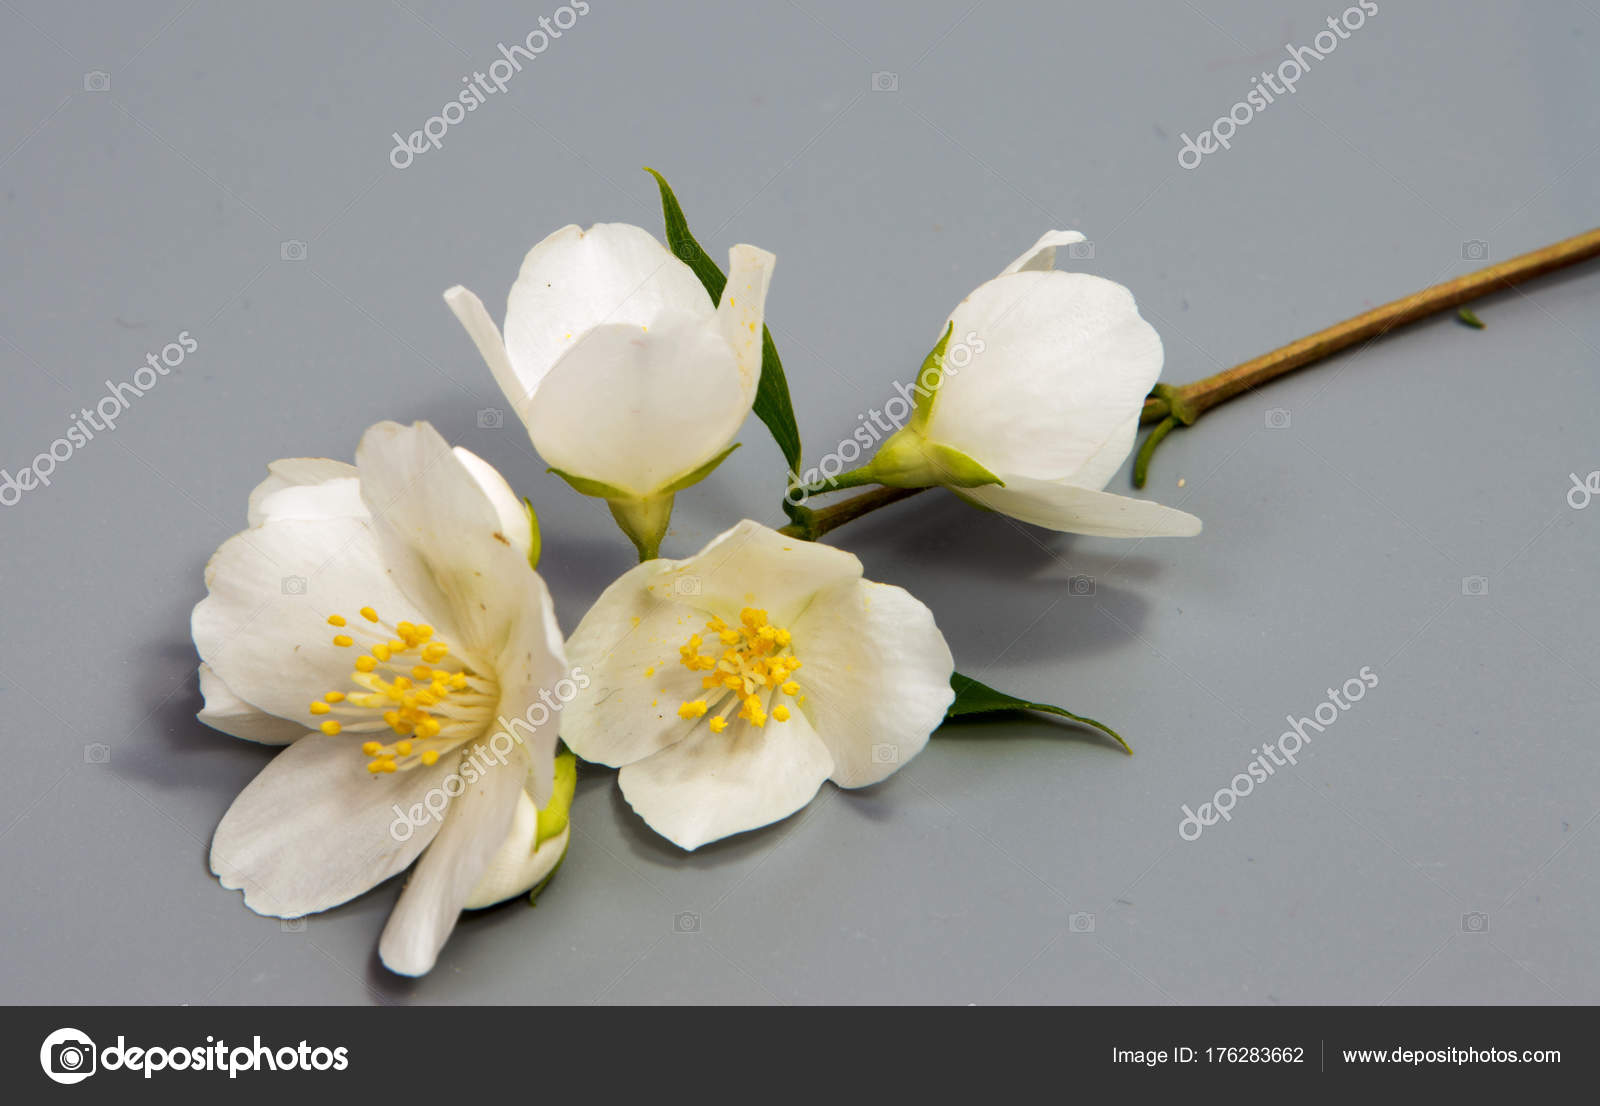 Branch Jasmine Flower Isolated White Jasmine Flower Stock Photo